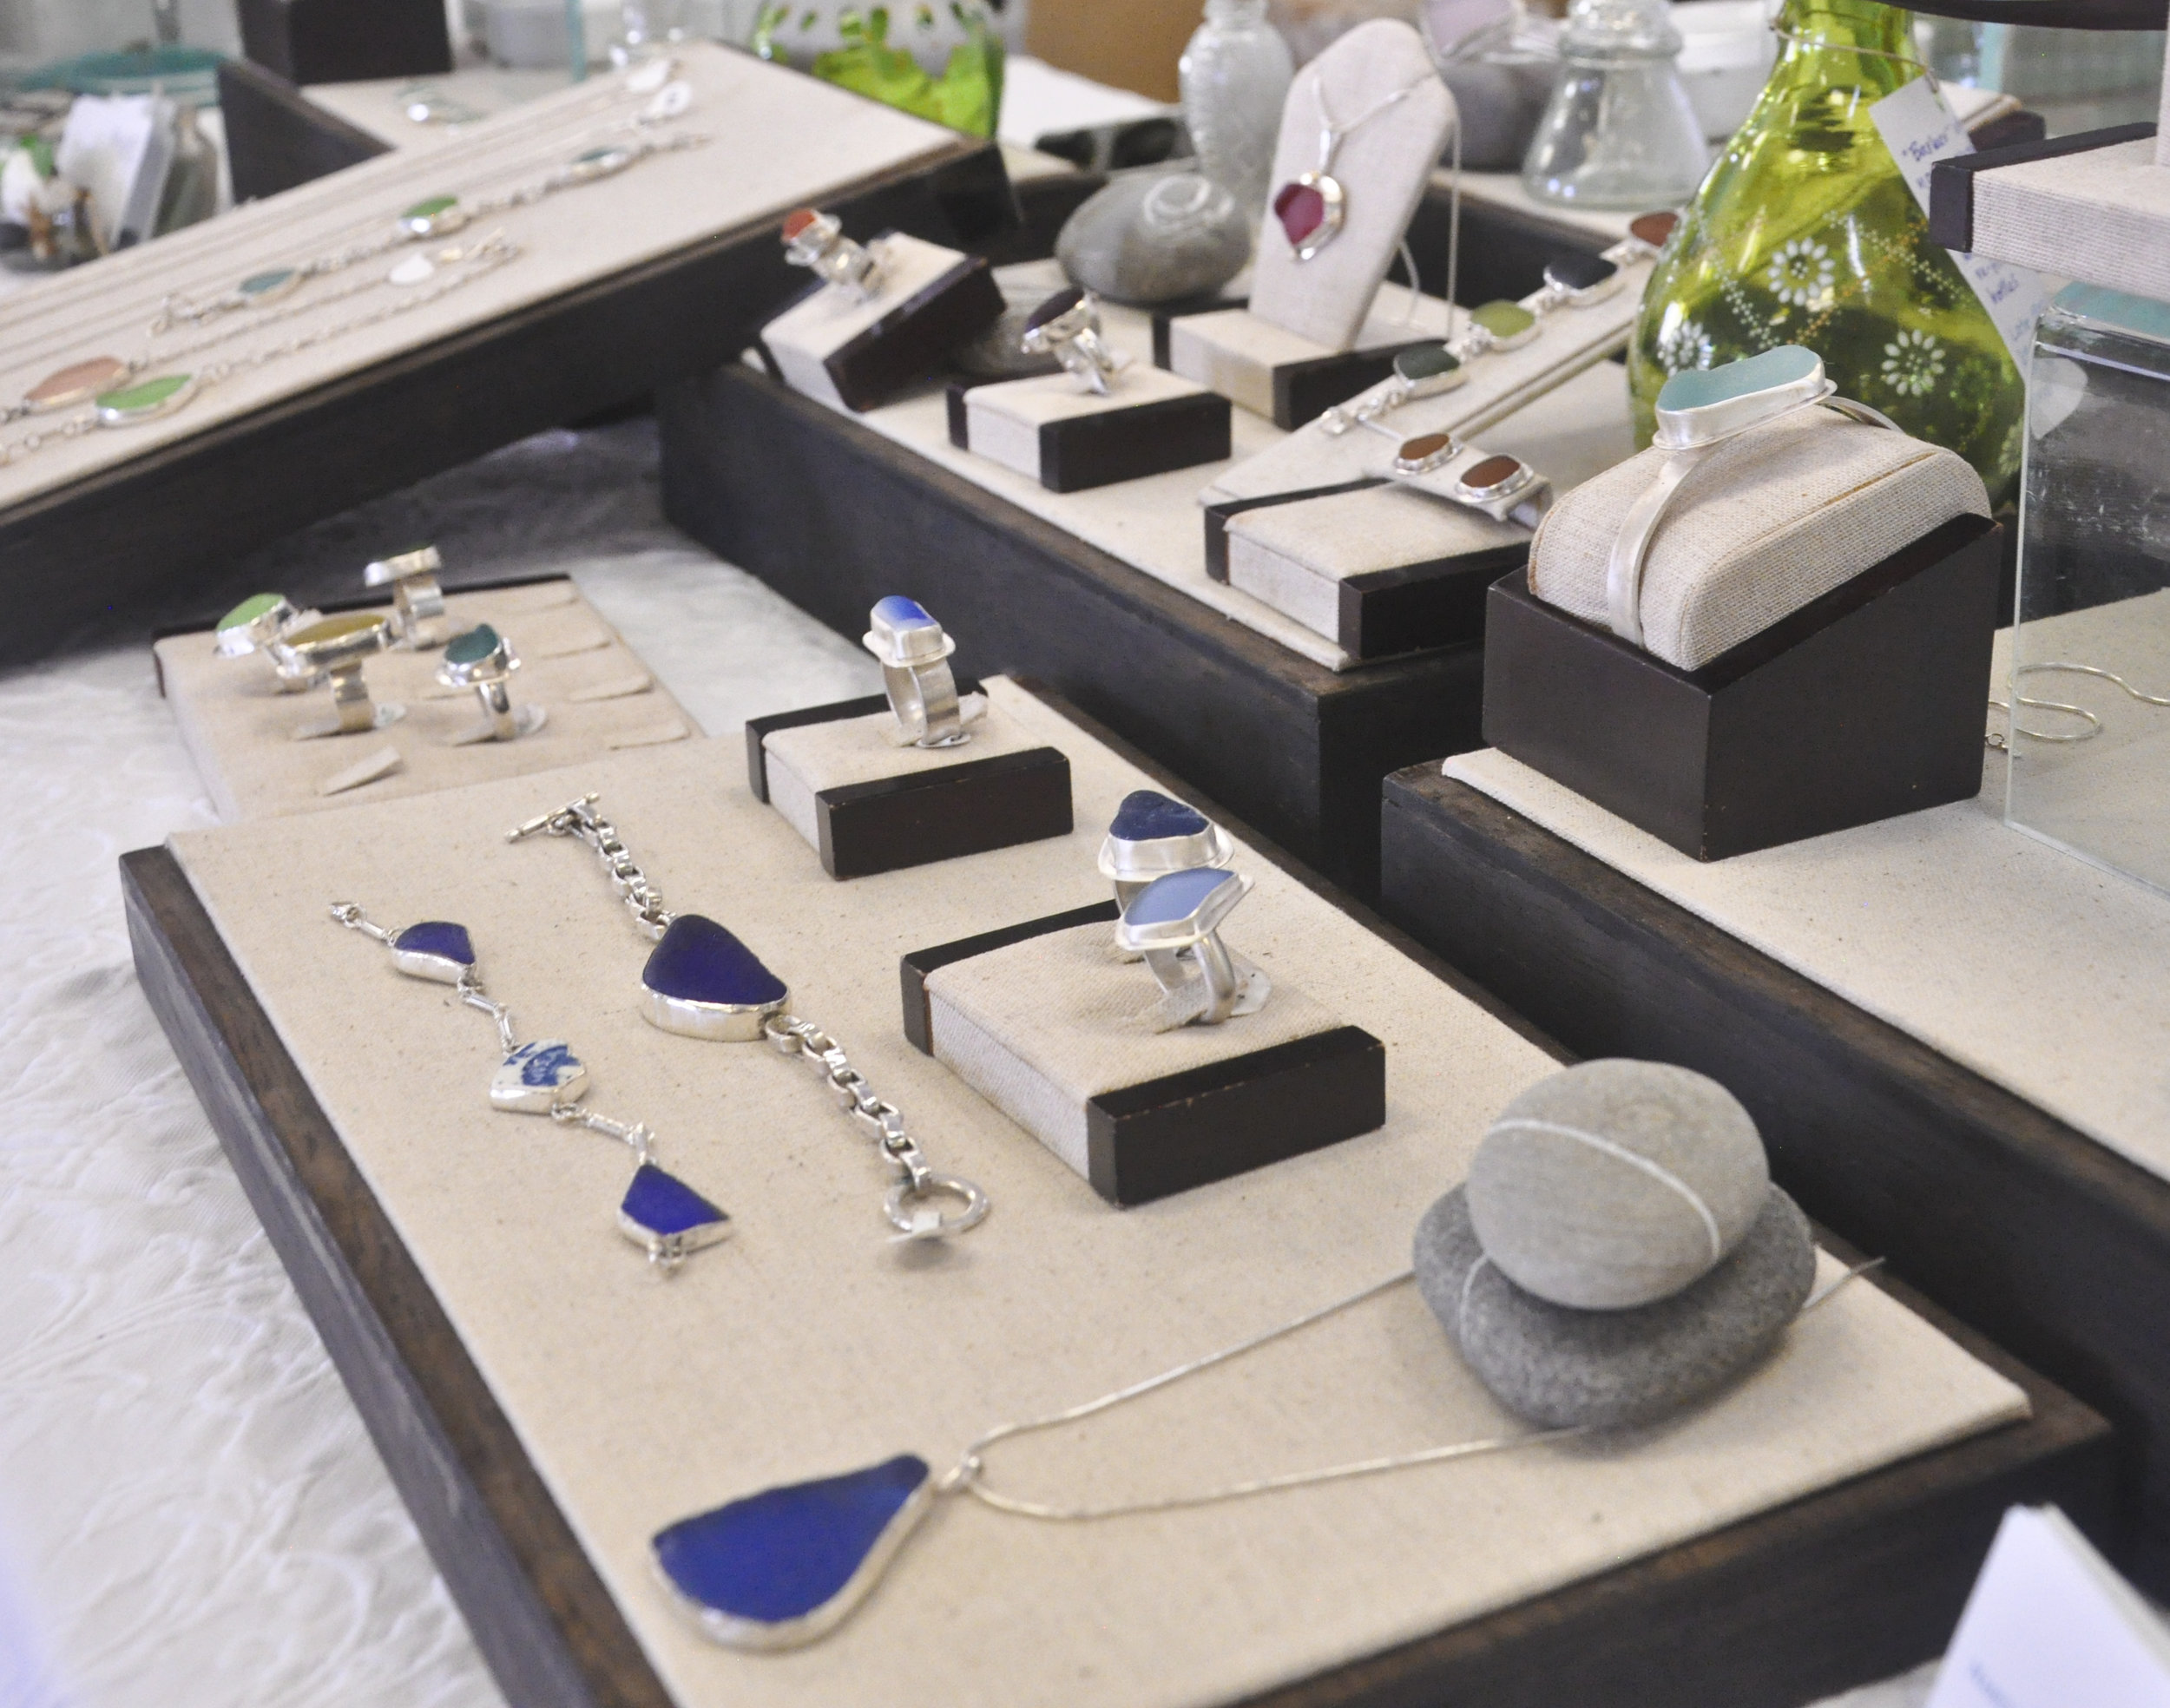 Chesapeake Sea Glass Jewelry photo by Heidi Kirkpatrick